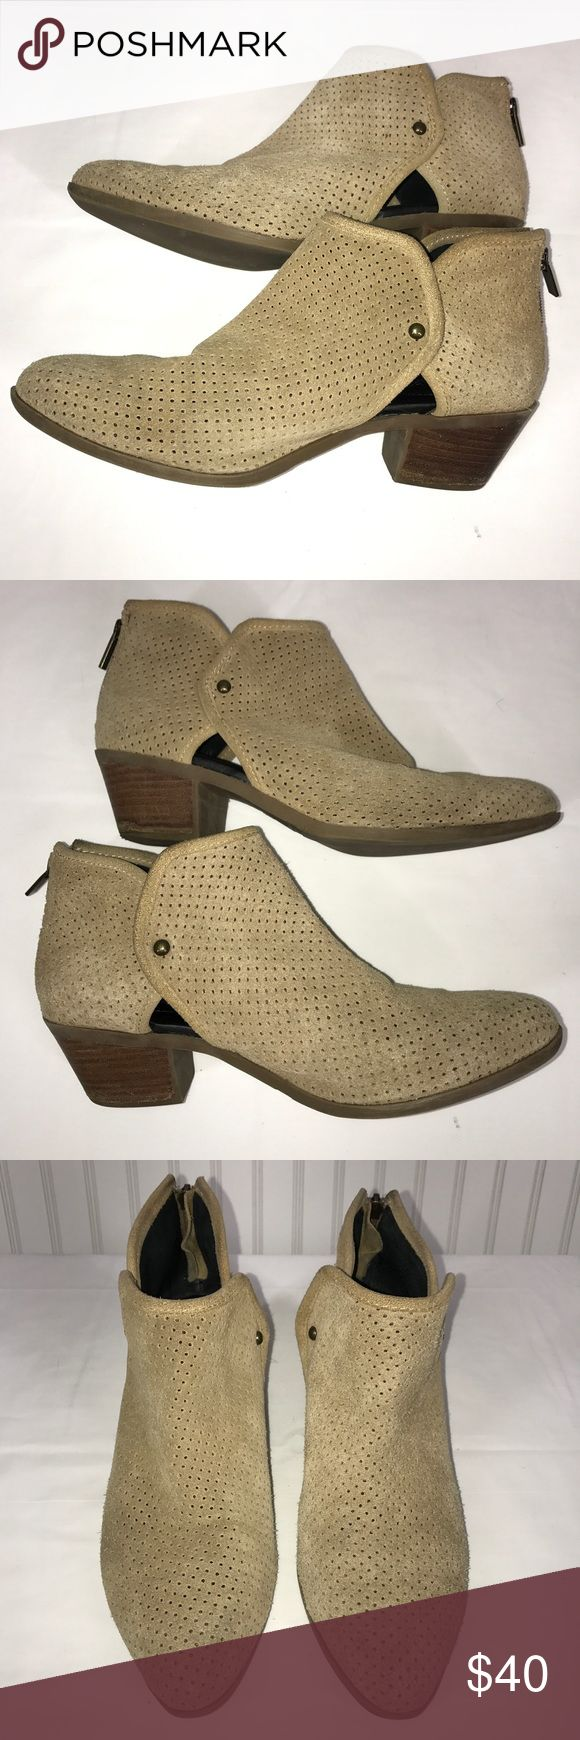 "Adam Tucker Suede Perforated Bootie, Size 9.5 These tan suede perforated ankle booties are in great pre-owned condition. Adam Tucker by me too. They are a Size 9.5 and have a 2"" block heel. Zipper in back adds a nice detail. A few minor marks near zip and some heel wear as shown. Still lots of use left in this bootie. Adam Tucker Shoes Ankle Boots & Booties"